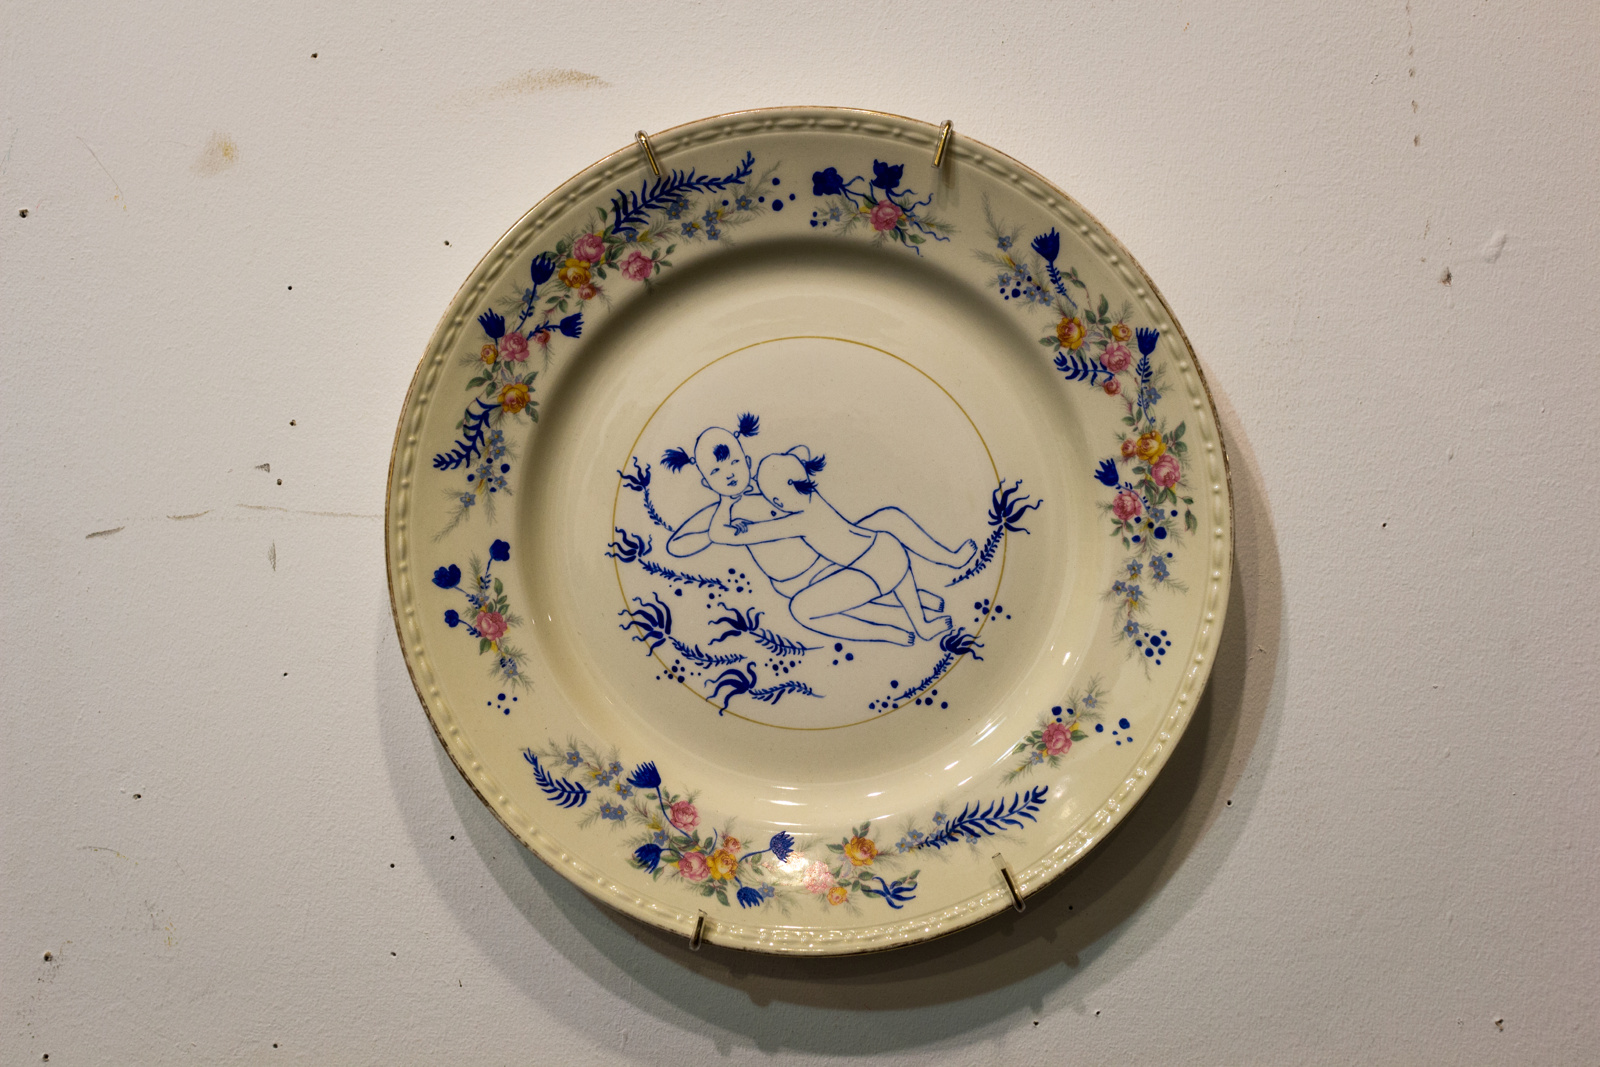 China painting on found plate, 10 x 10 inches, 2014